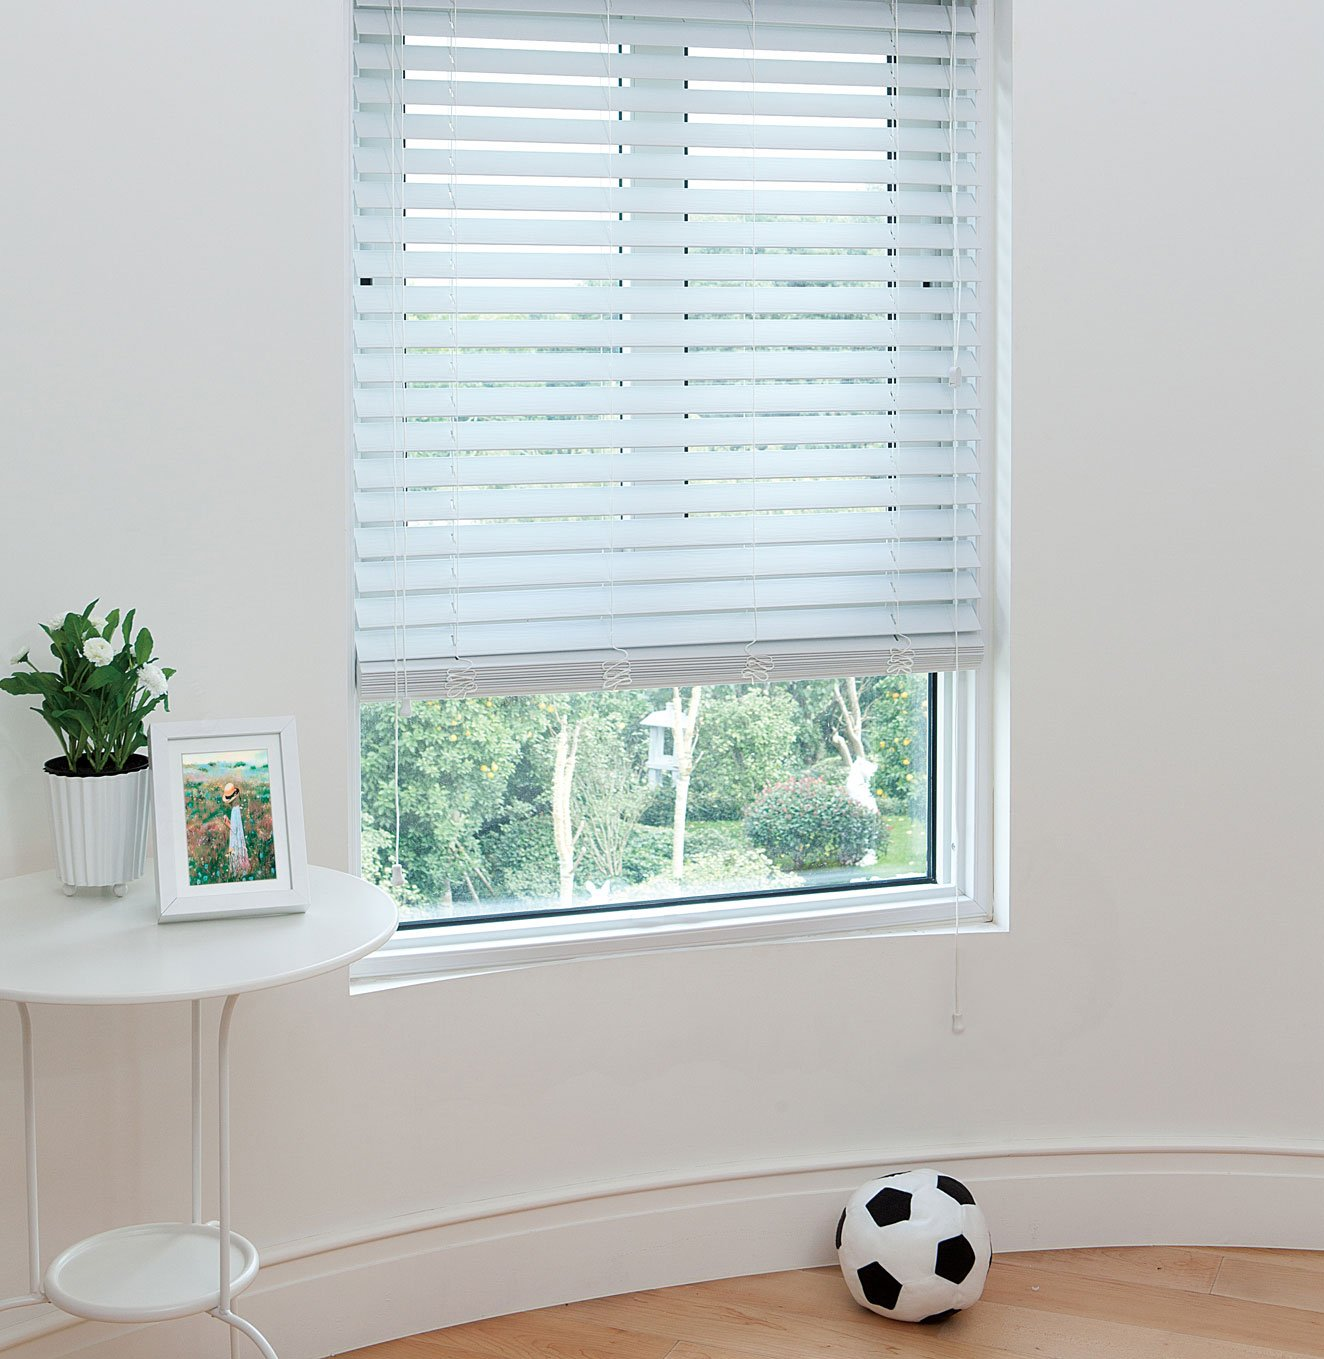 36 inch window blinds - Amazon Com 2 Faux Wood Blinds 48 X 36 Inches In White With Premium Upgraded Crown Valance Fascia Home Kitchen